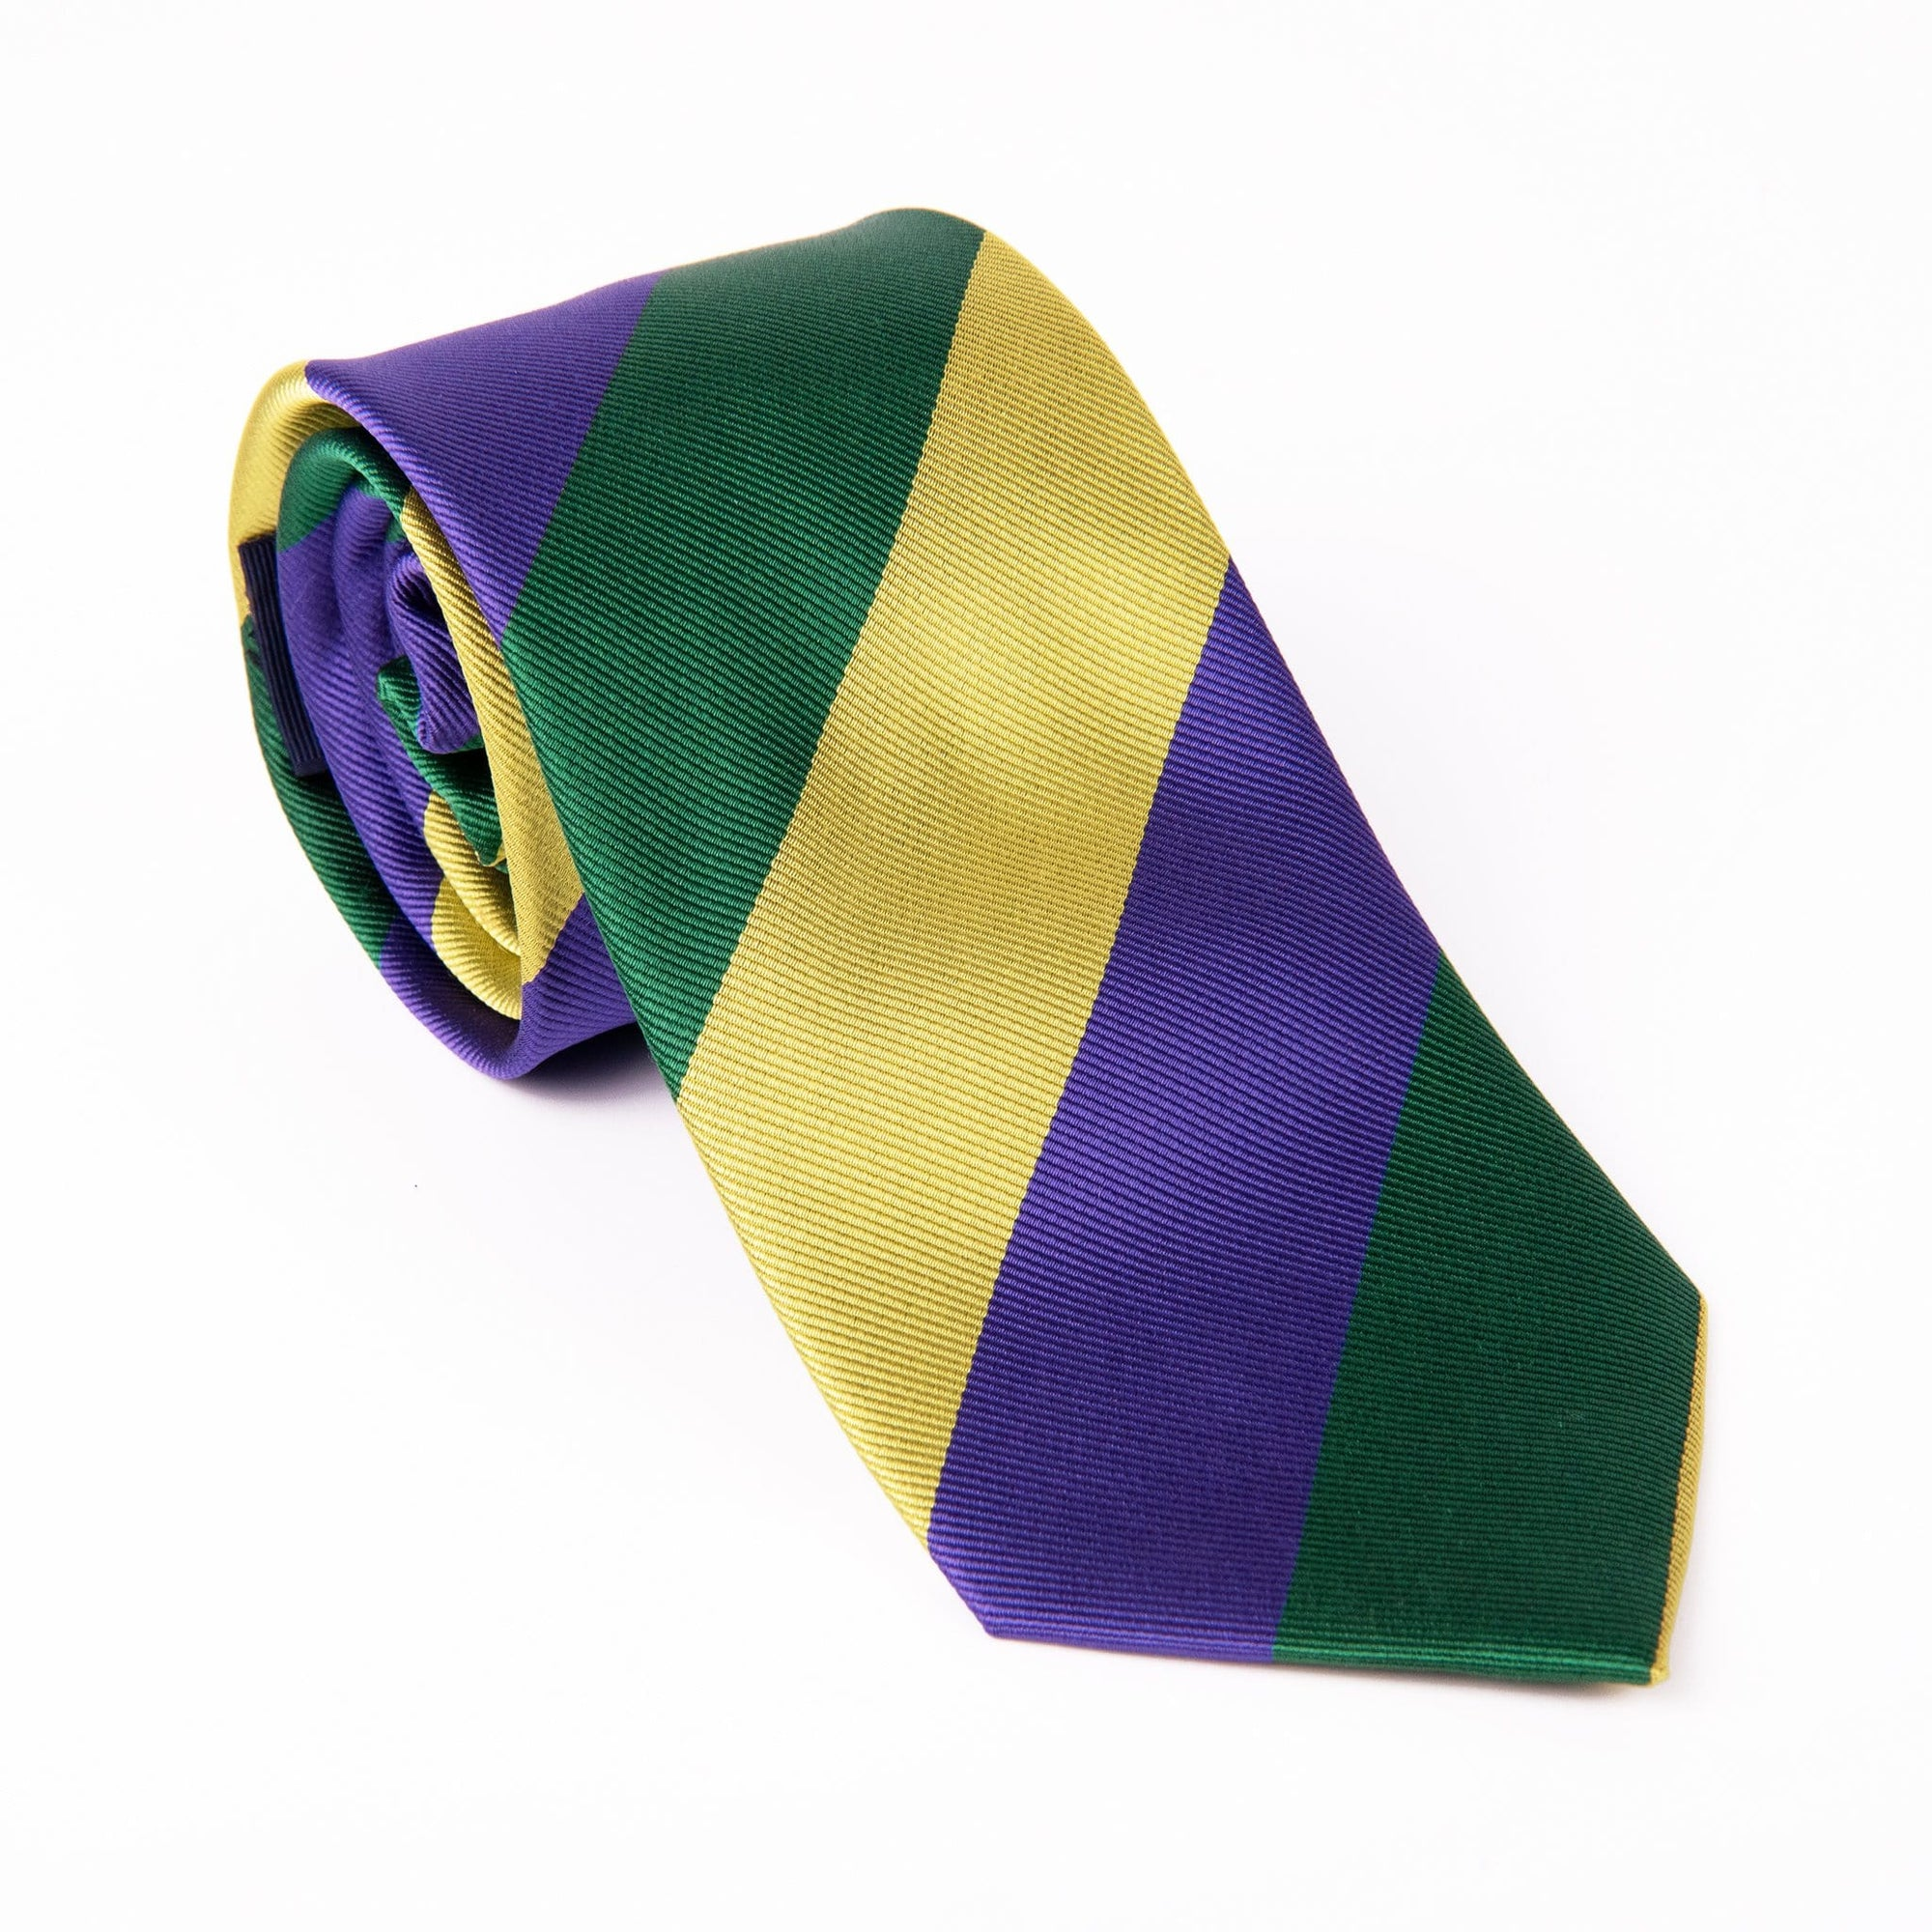 Mardi Gras Wide Stripe Tie - Haspel Clothing